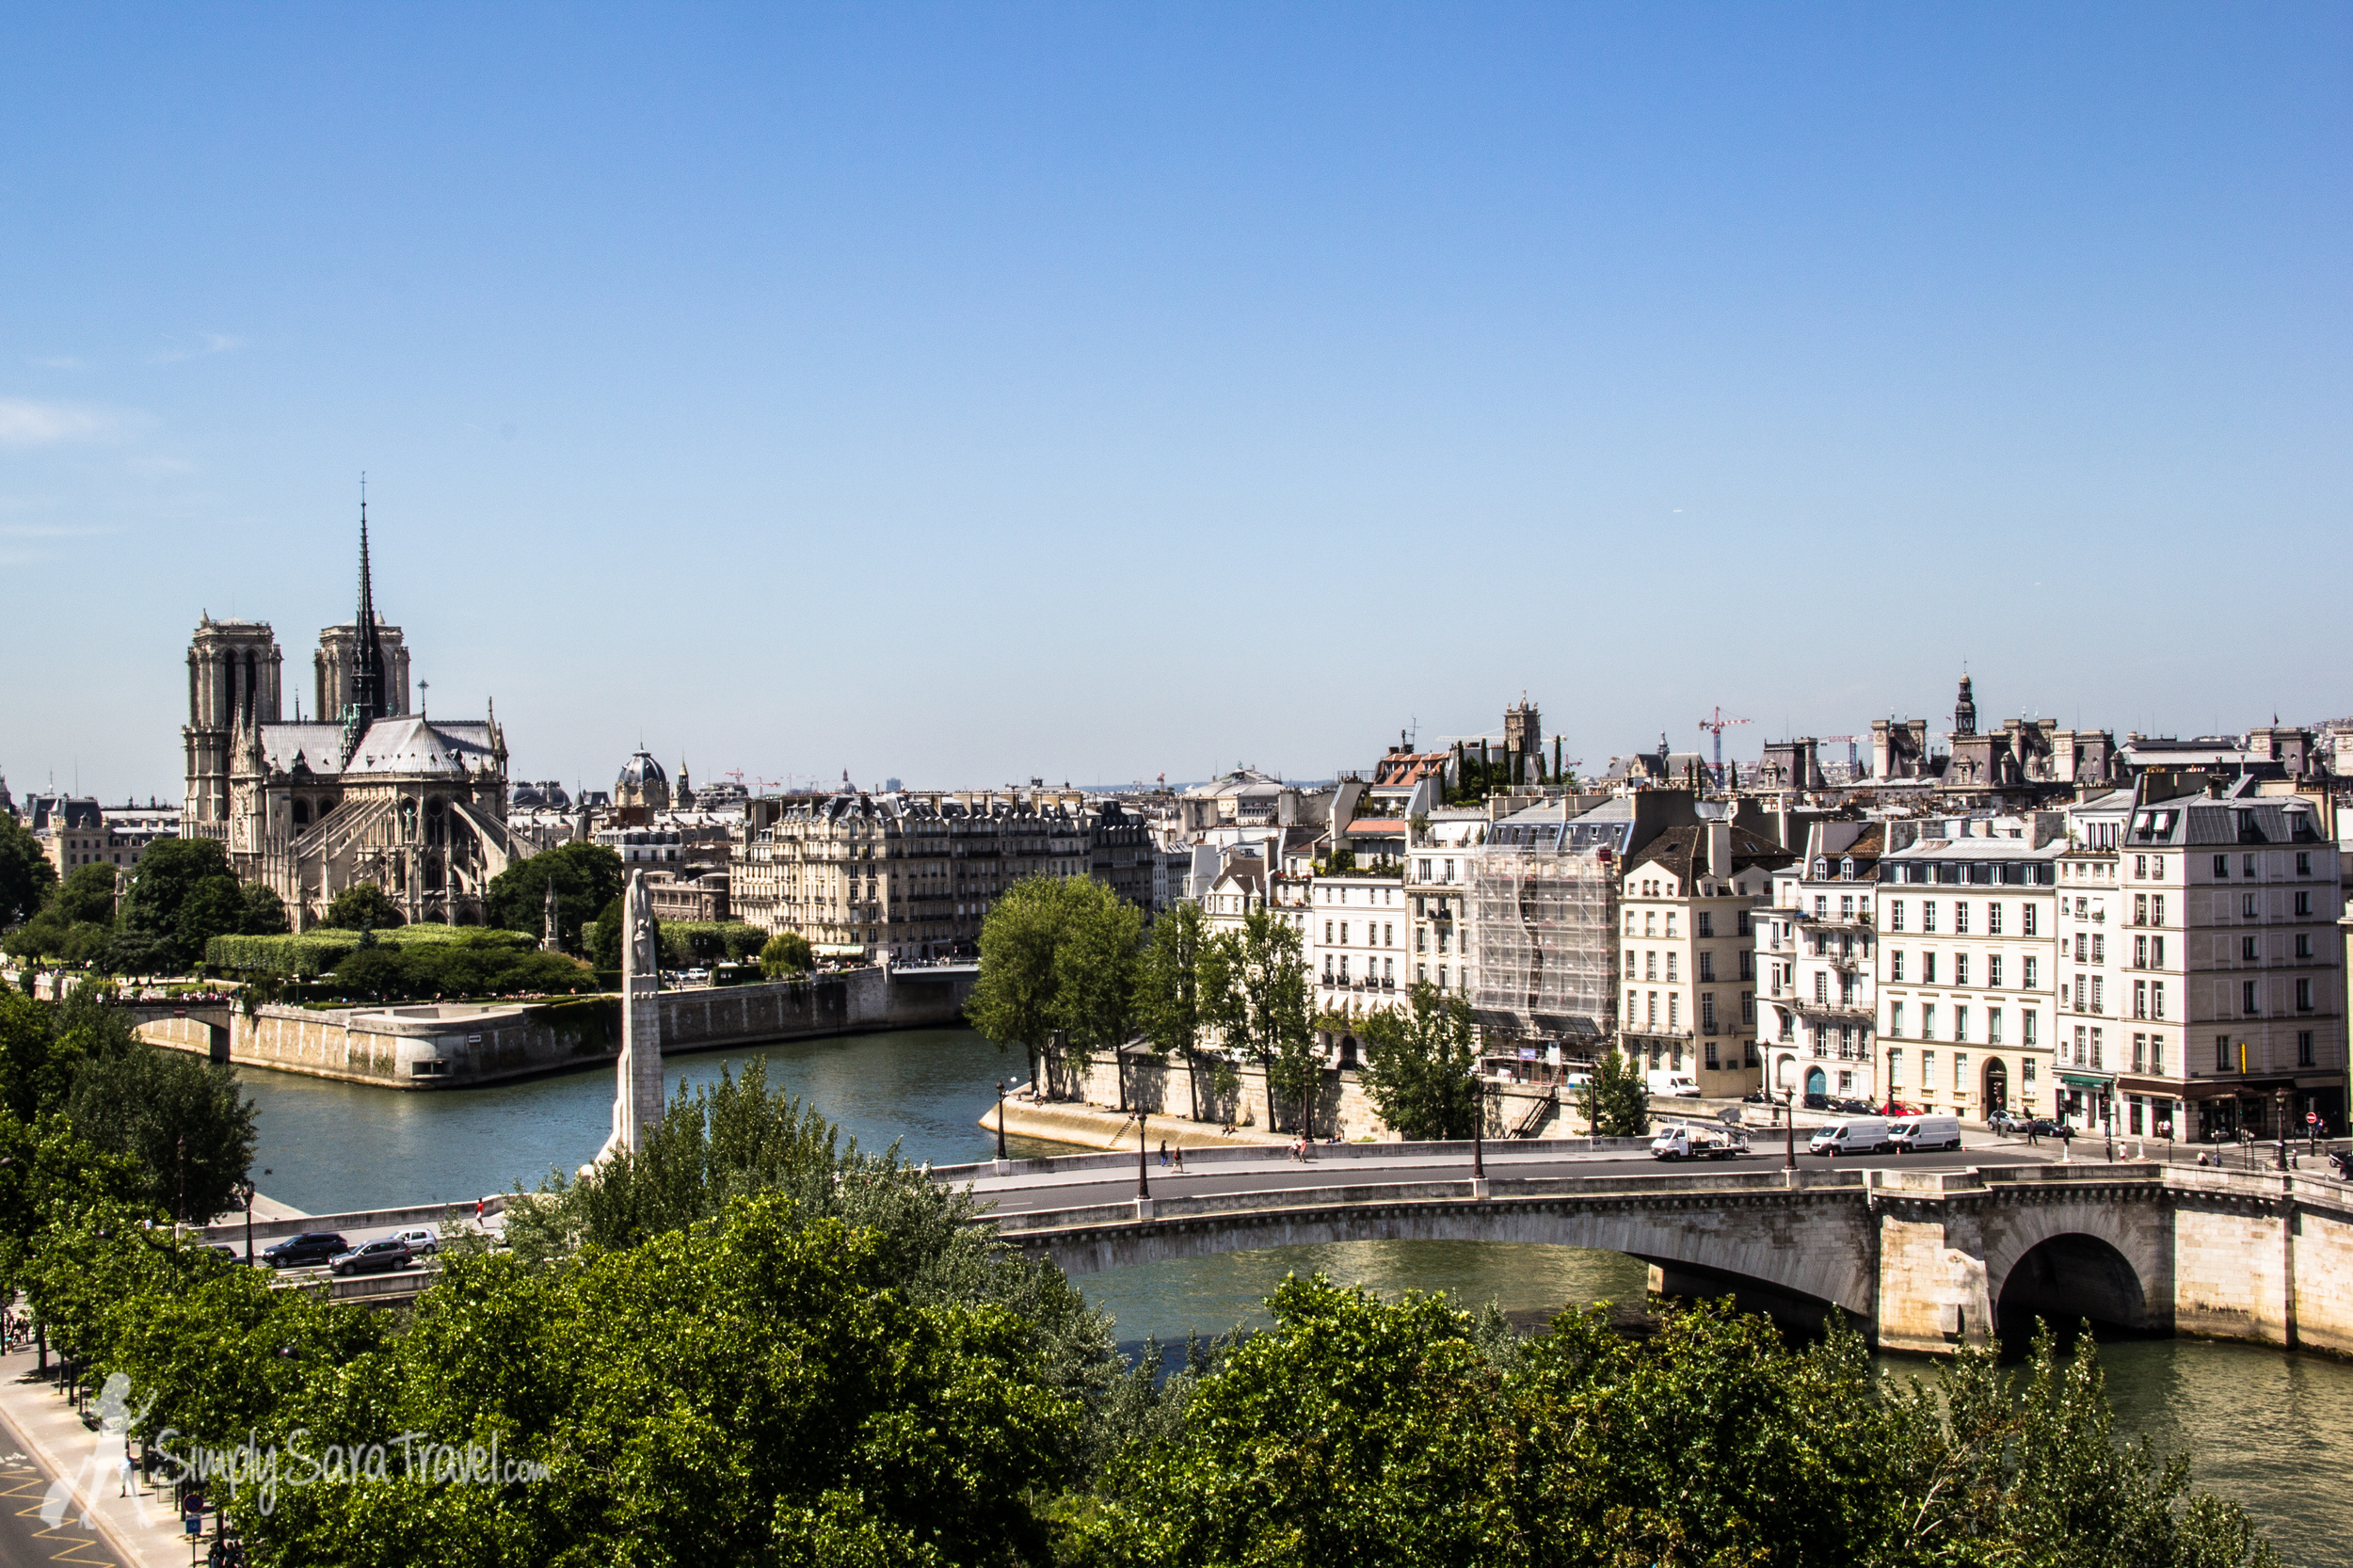 Looking out at the back of Notre Dame from the terrace